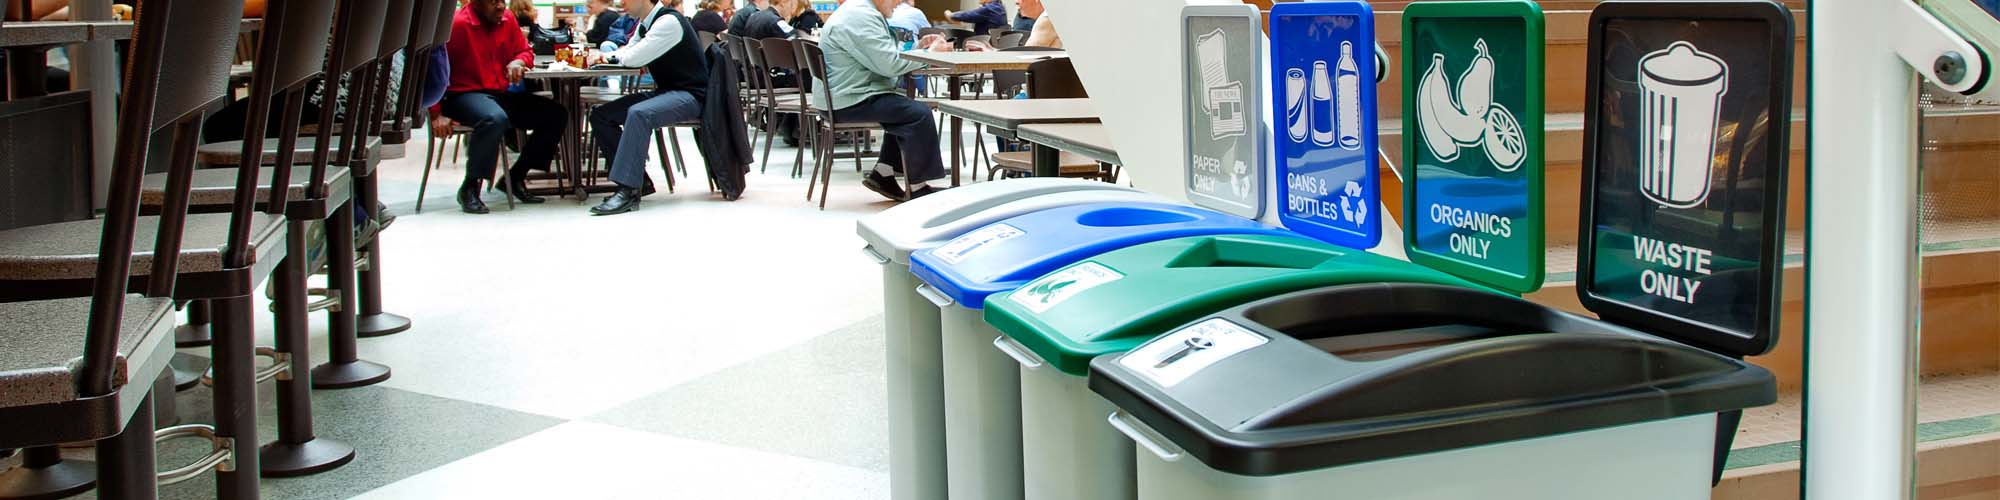 The Waste Watcher Recycling & Waste Bins – Taking the Market by Storm